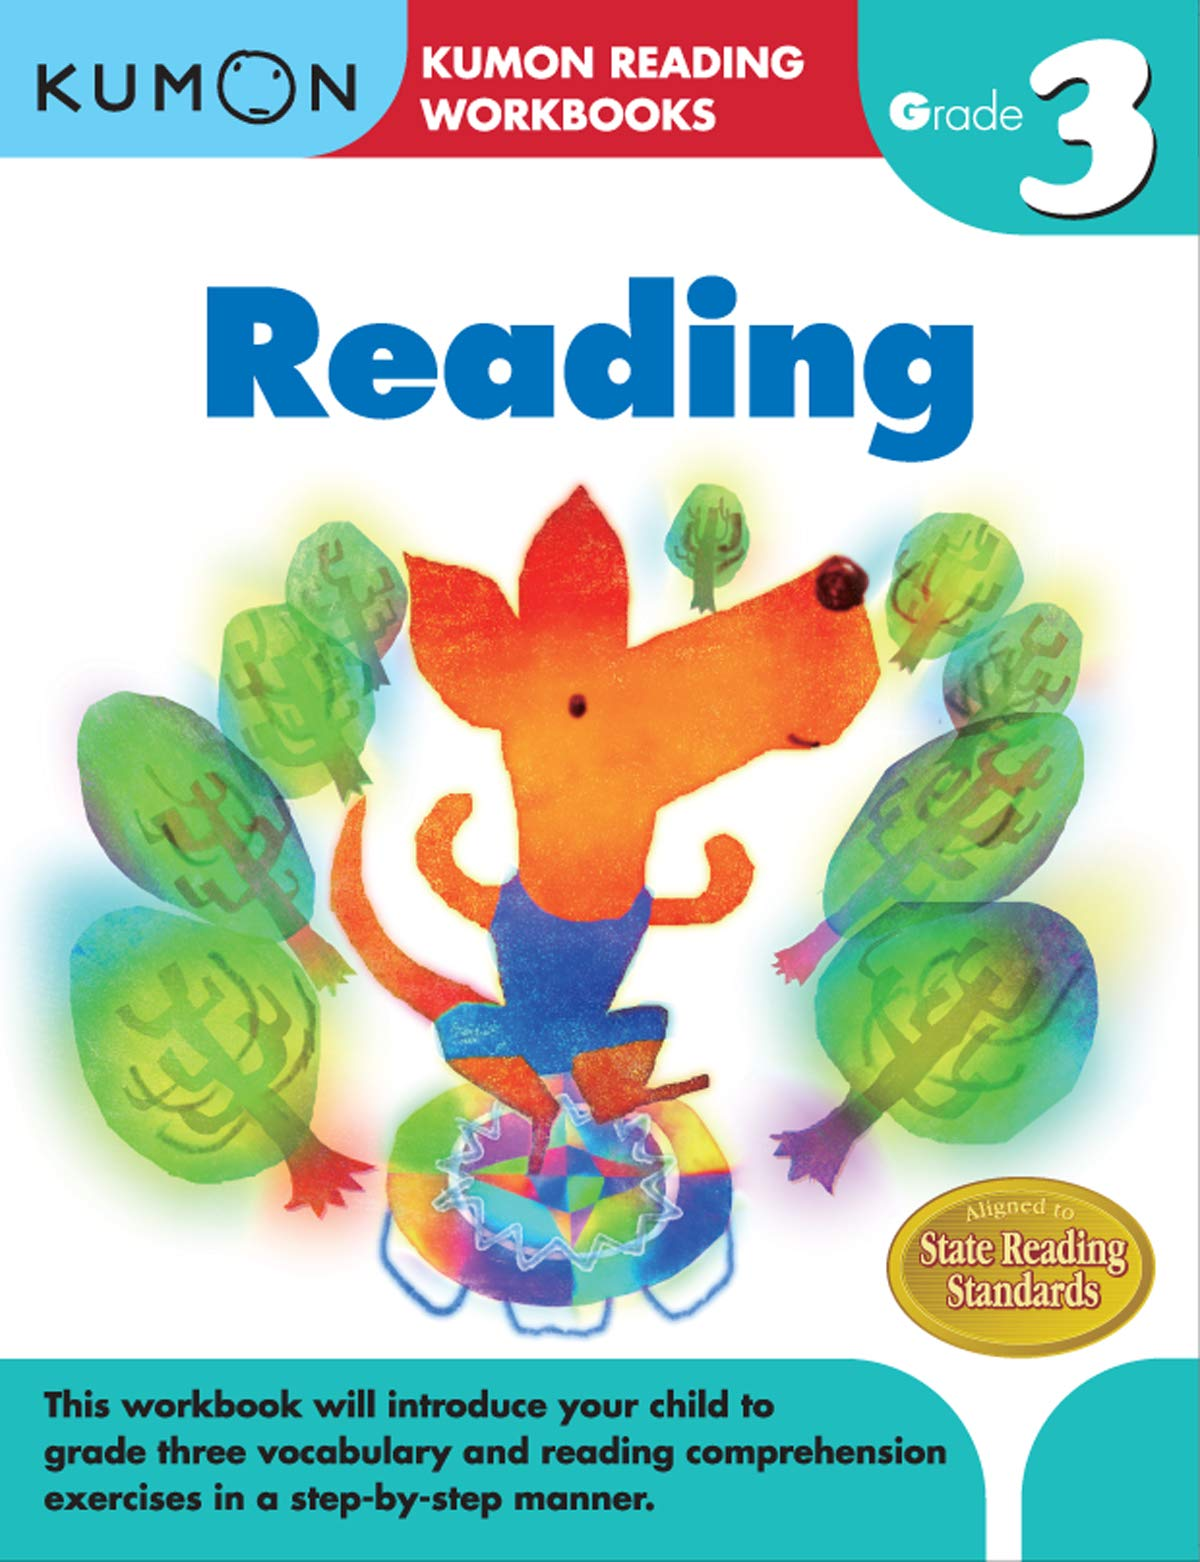 Buy Grade 3 Reading Kumon Reading Workbook Book Online At Low Prices In India Grade 3 Reading Kumon Reading Workbook Reviews Ratings Amazon In [ 1562 x 1200 Pixel ]